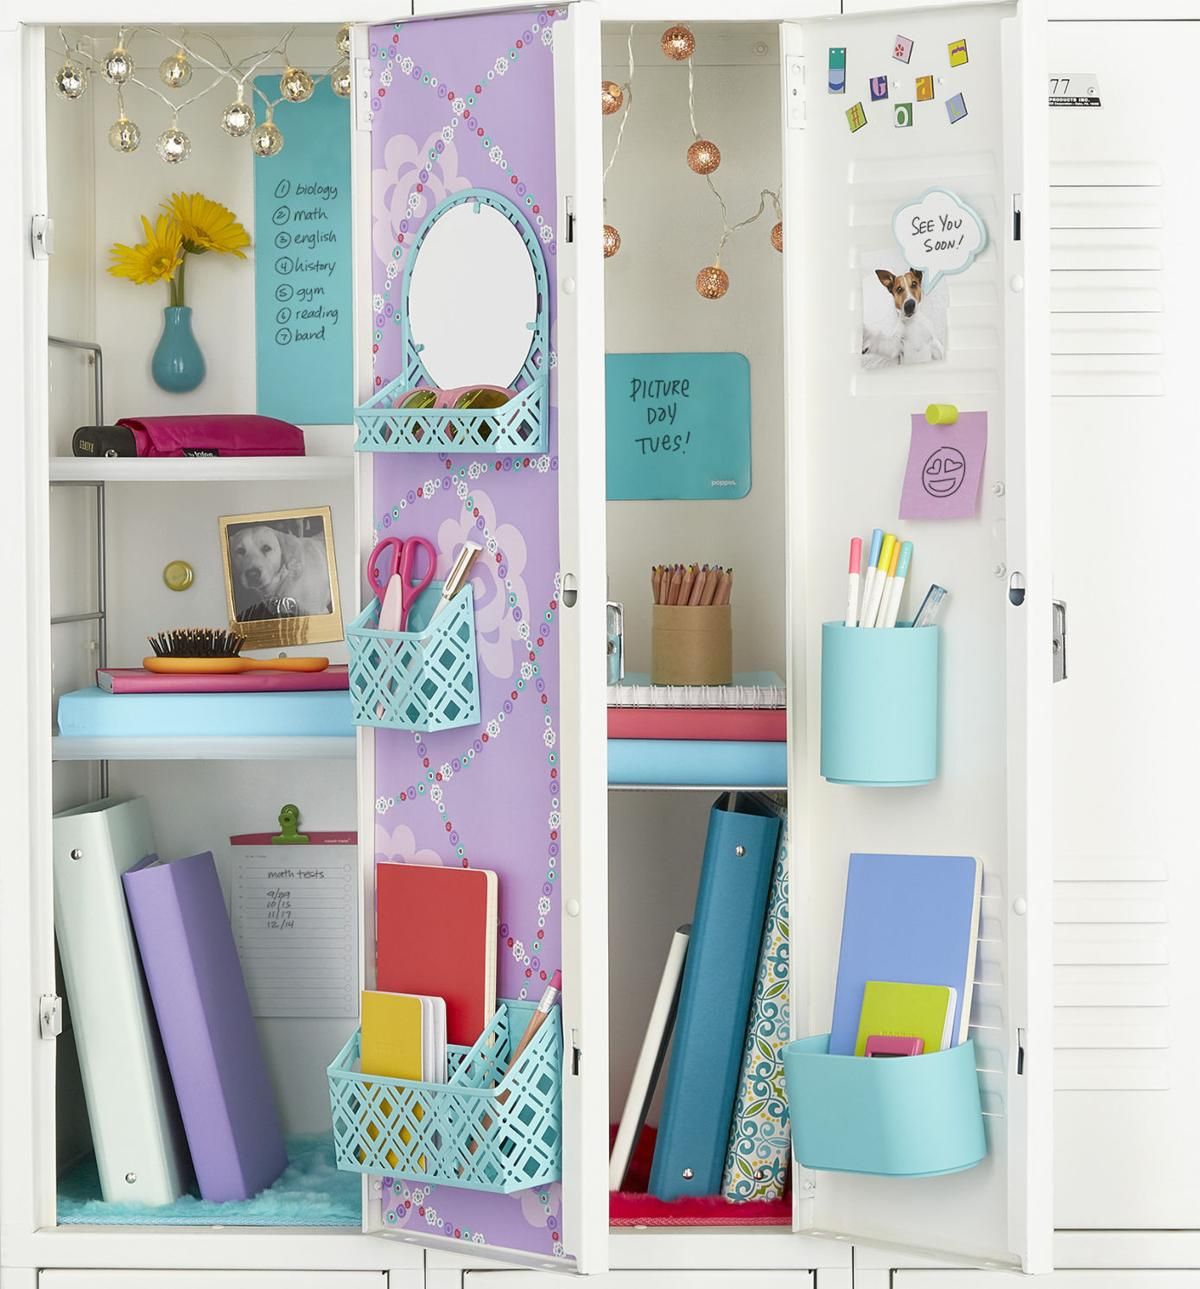 Locker decorations and beyond | | magicvalley.com